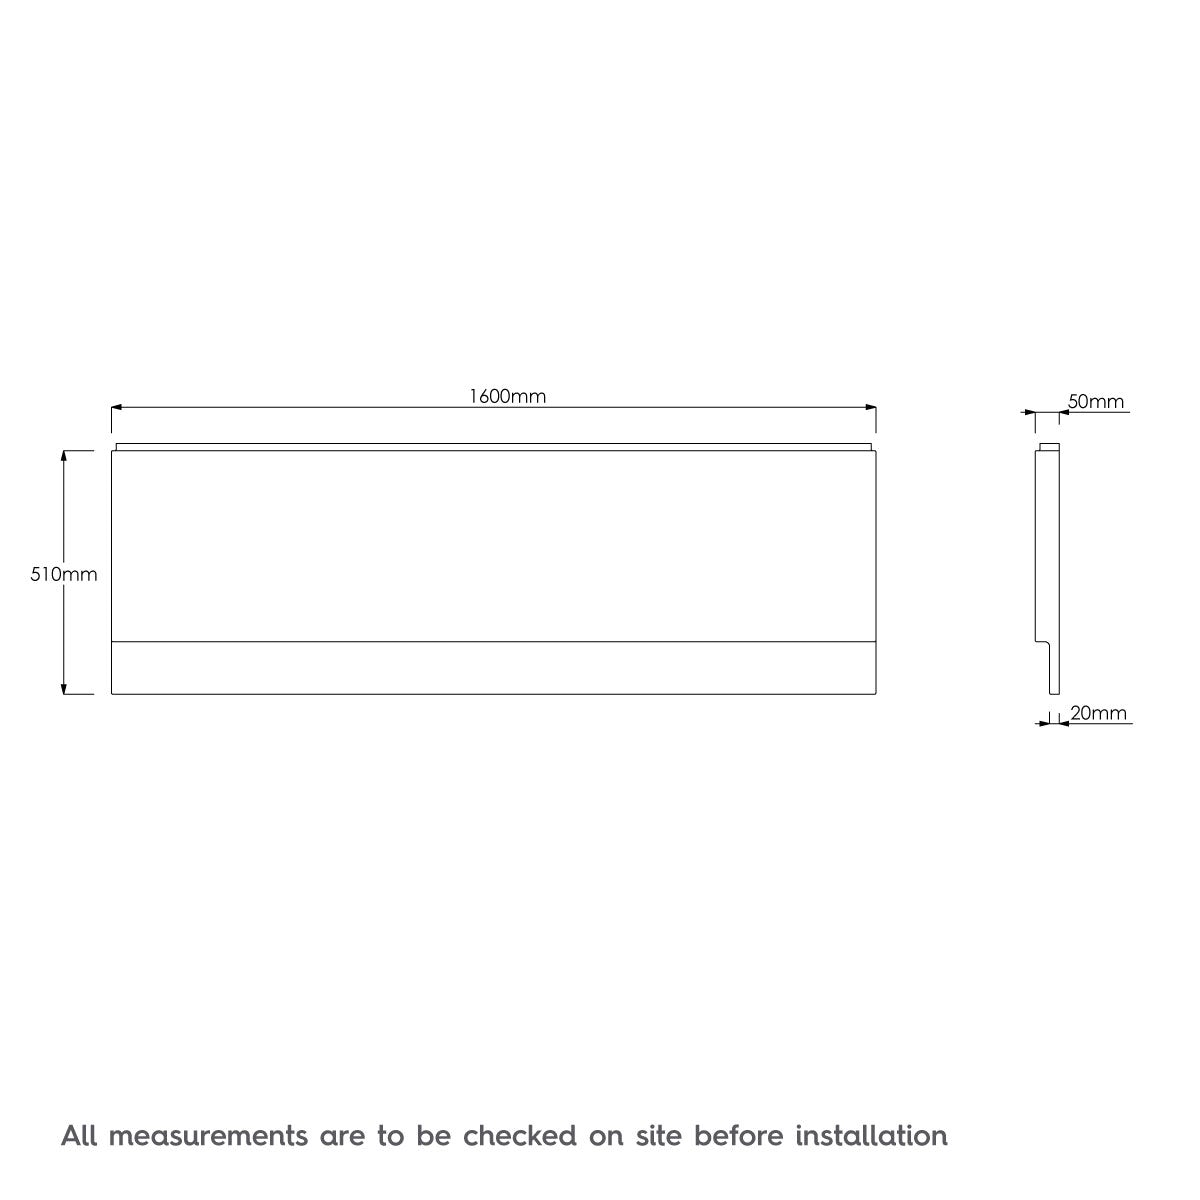 Dimensions for Orchard Acrylic straight bath front panel 1600mm